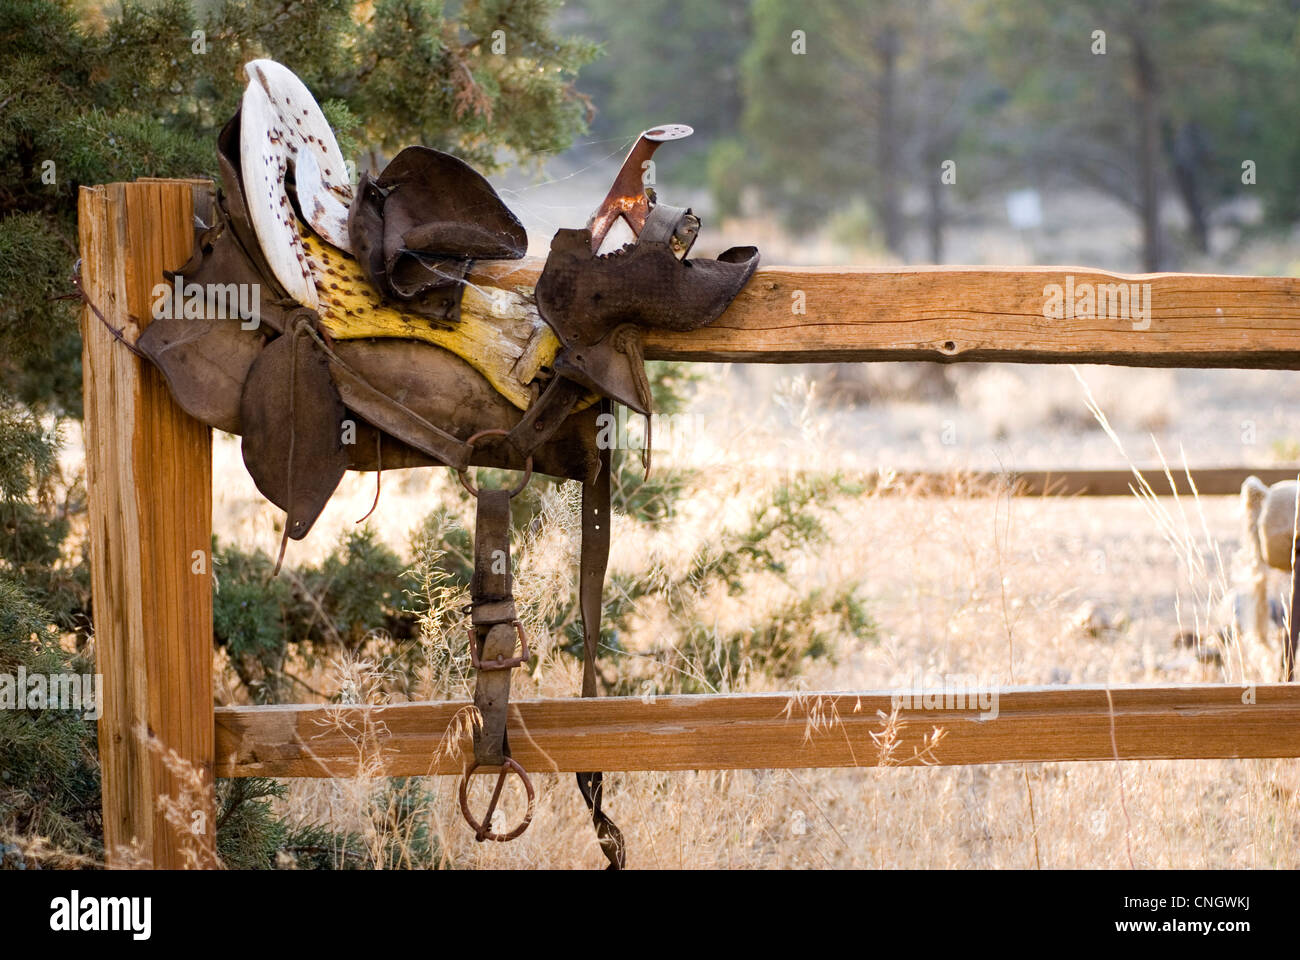 A weathered antique saddle on a split rail fence in the rural countryside. Room for copy. - Stock Image